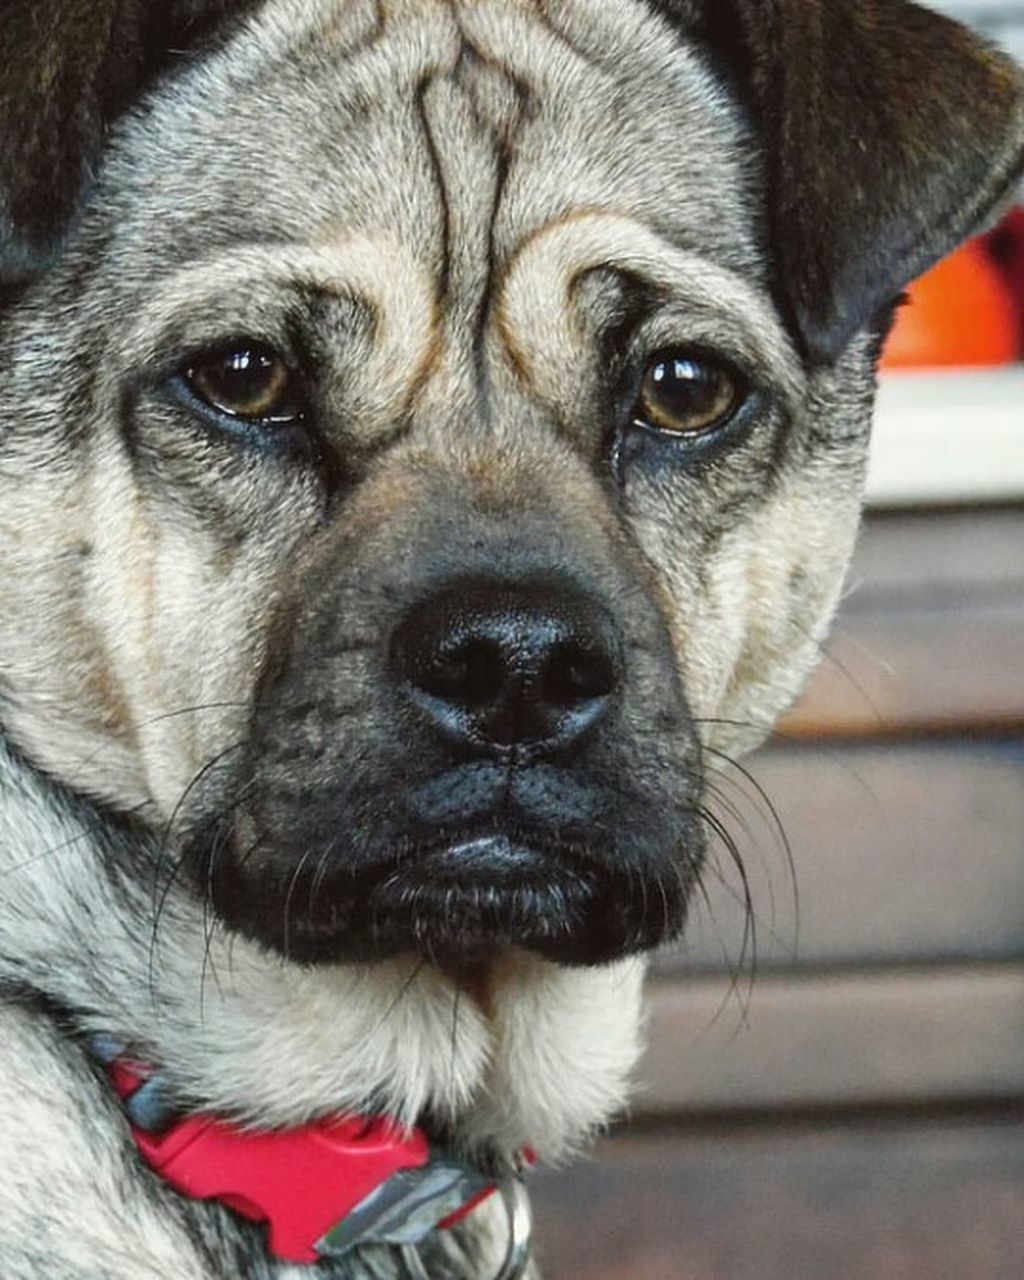 dog, one animal, pets, domestic animals, animal themes, close-up, mammal, focus on foreground, animal head, no people, portrait, day, outdoors, looking at camera